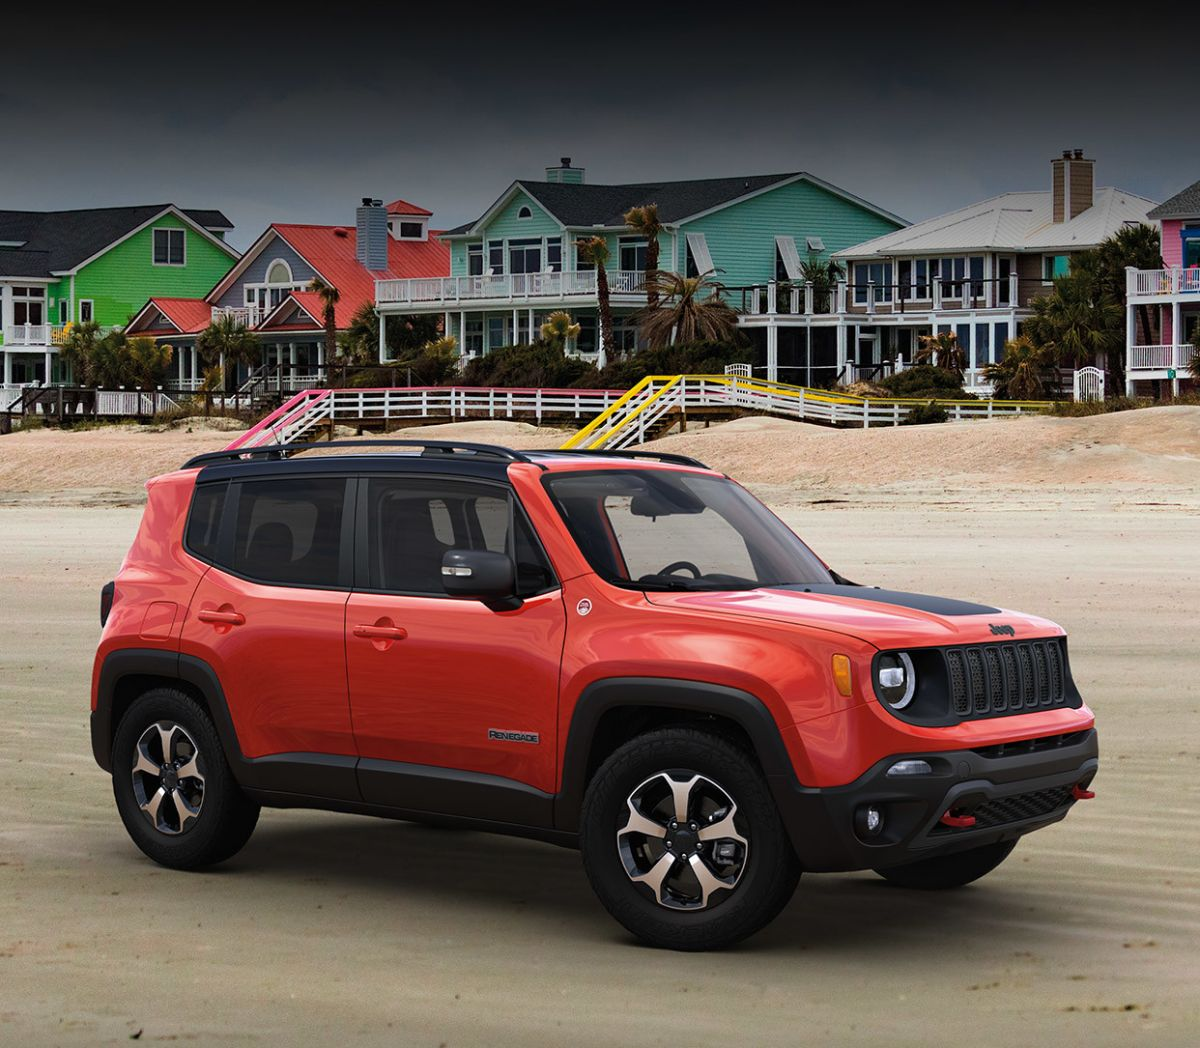 2021 Jeep Renegade Redesign, Specs, Price